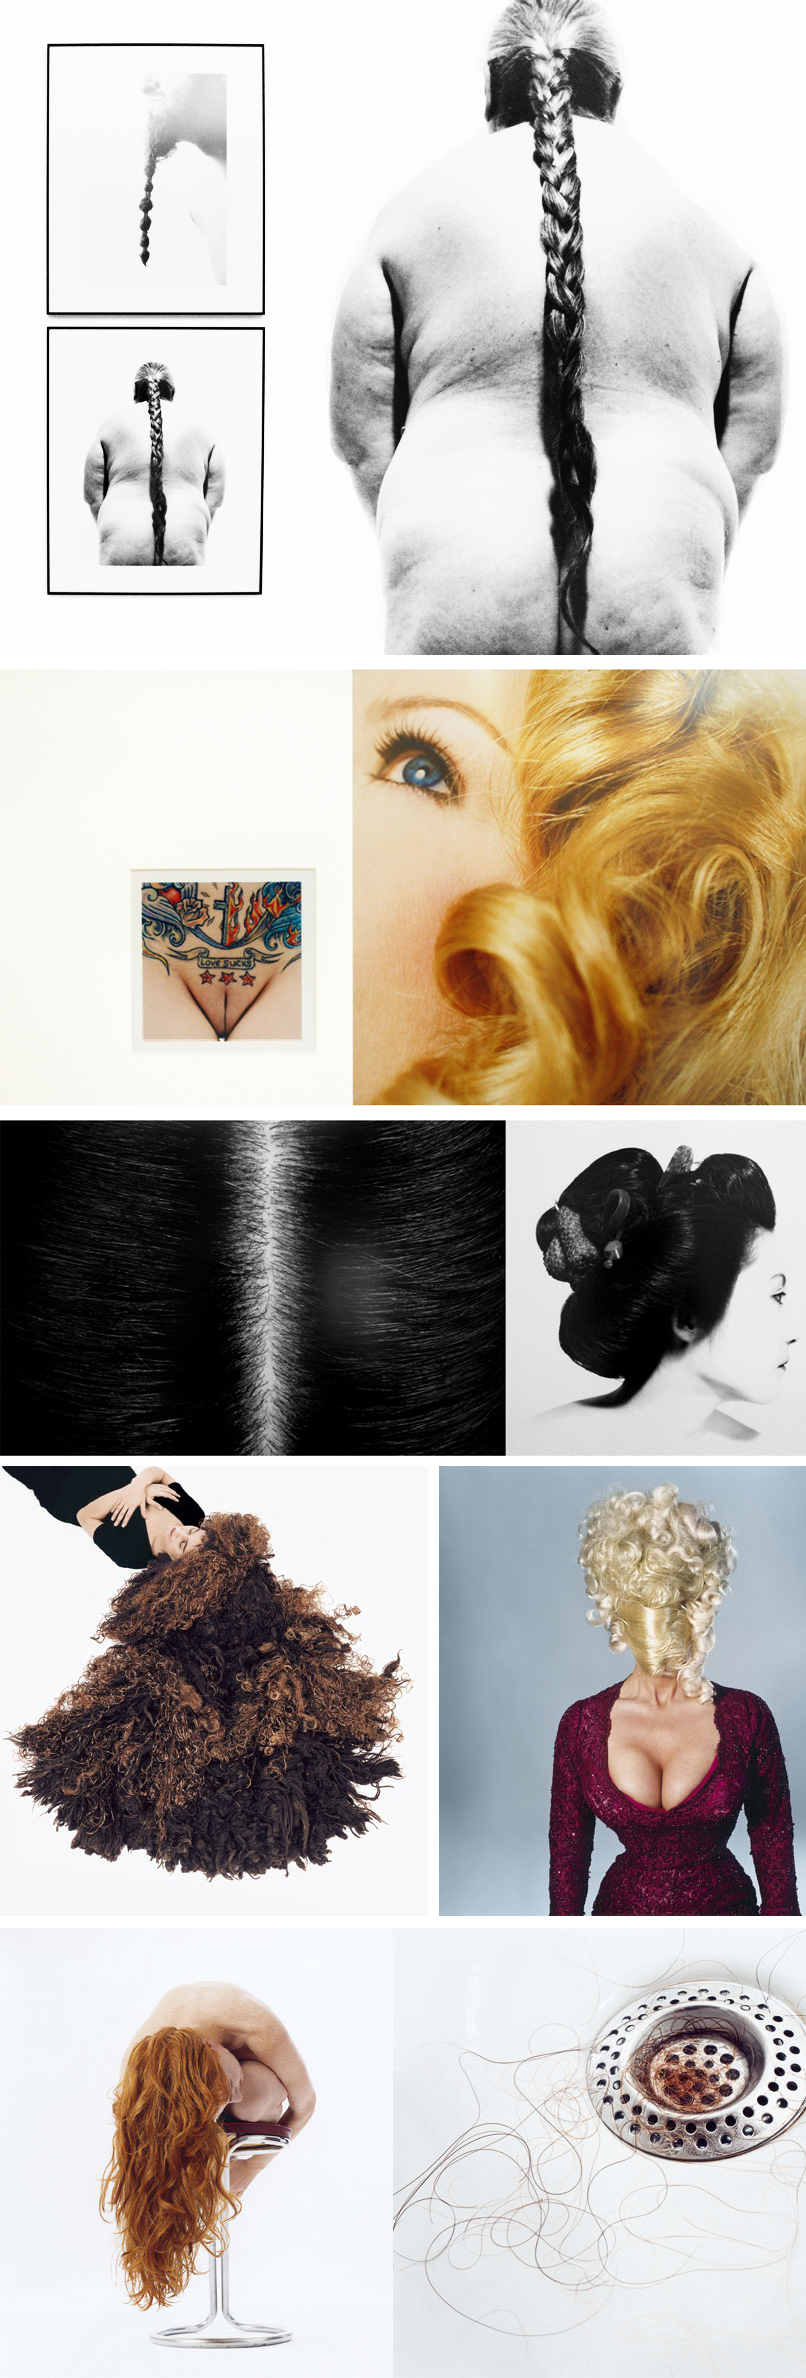 from the exhibit Haare (Hair) by Herlinde Koelbl  | www.alicia-carvalho.com/blog